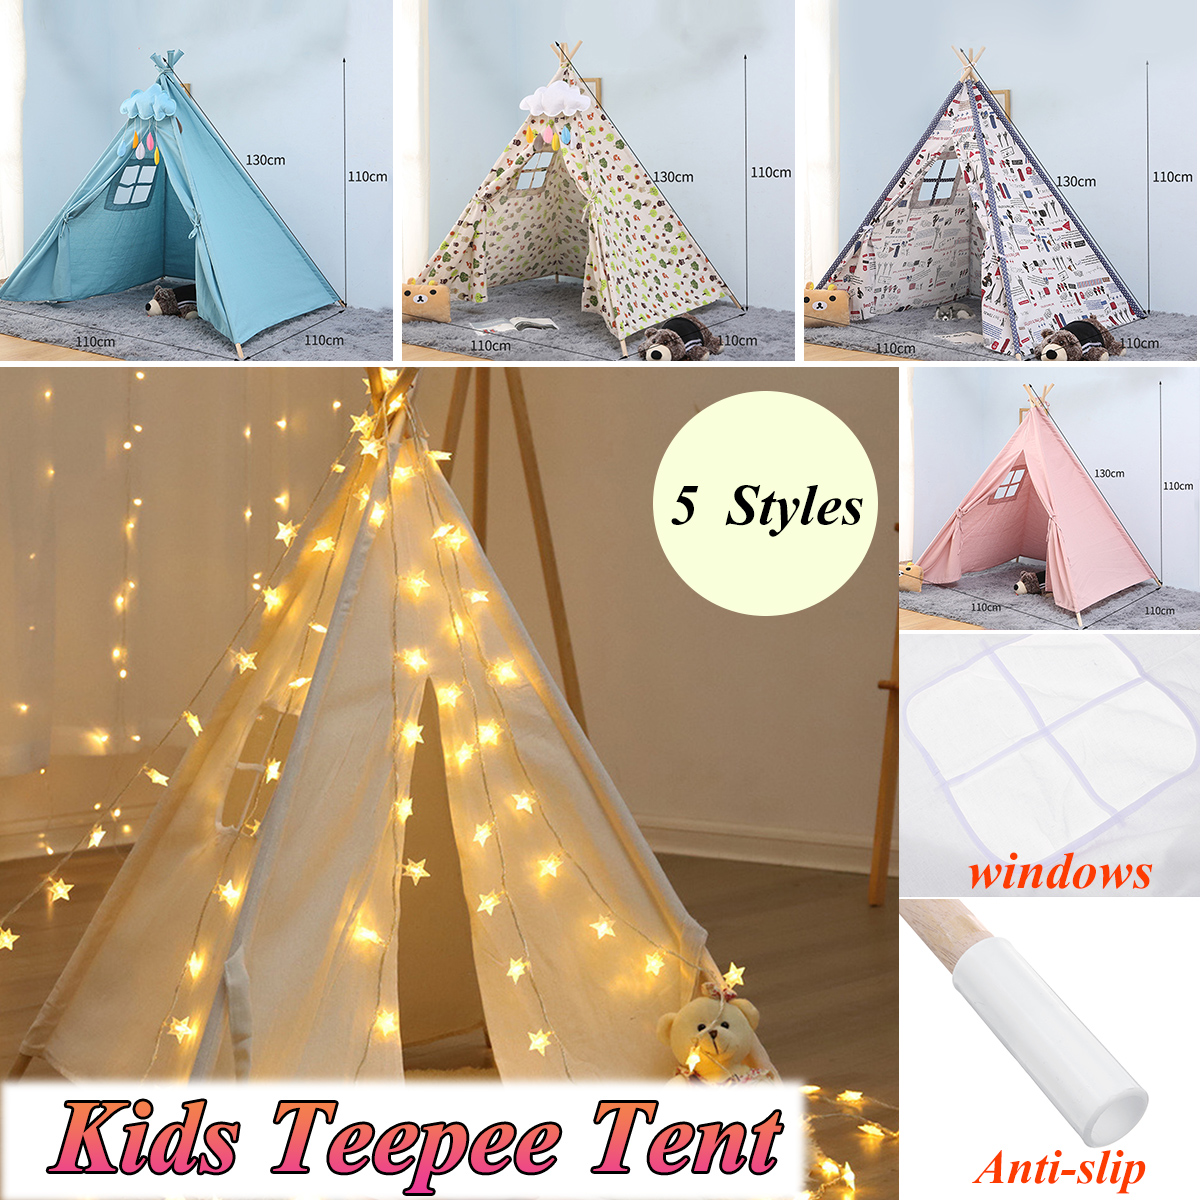 1.3m-Large Canvas Teepee Tent Kids Teepee Tipi with Grey Pom Poms Indian Play Tent House Children Tipi Tee Pee Tent NO MAT